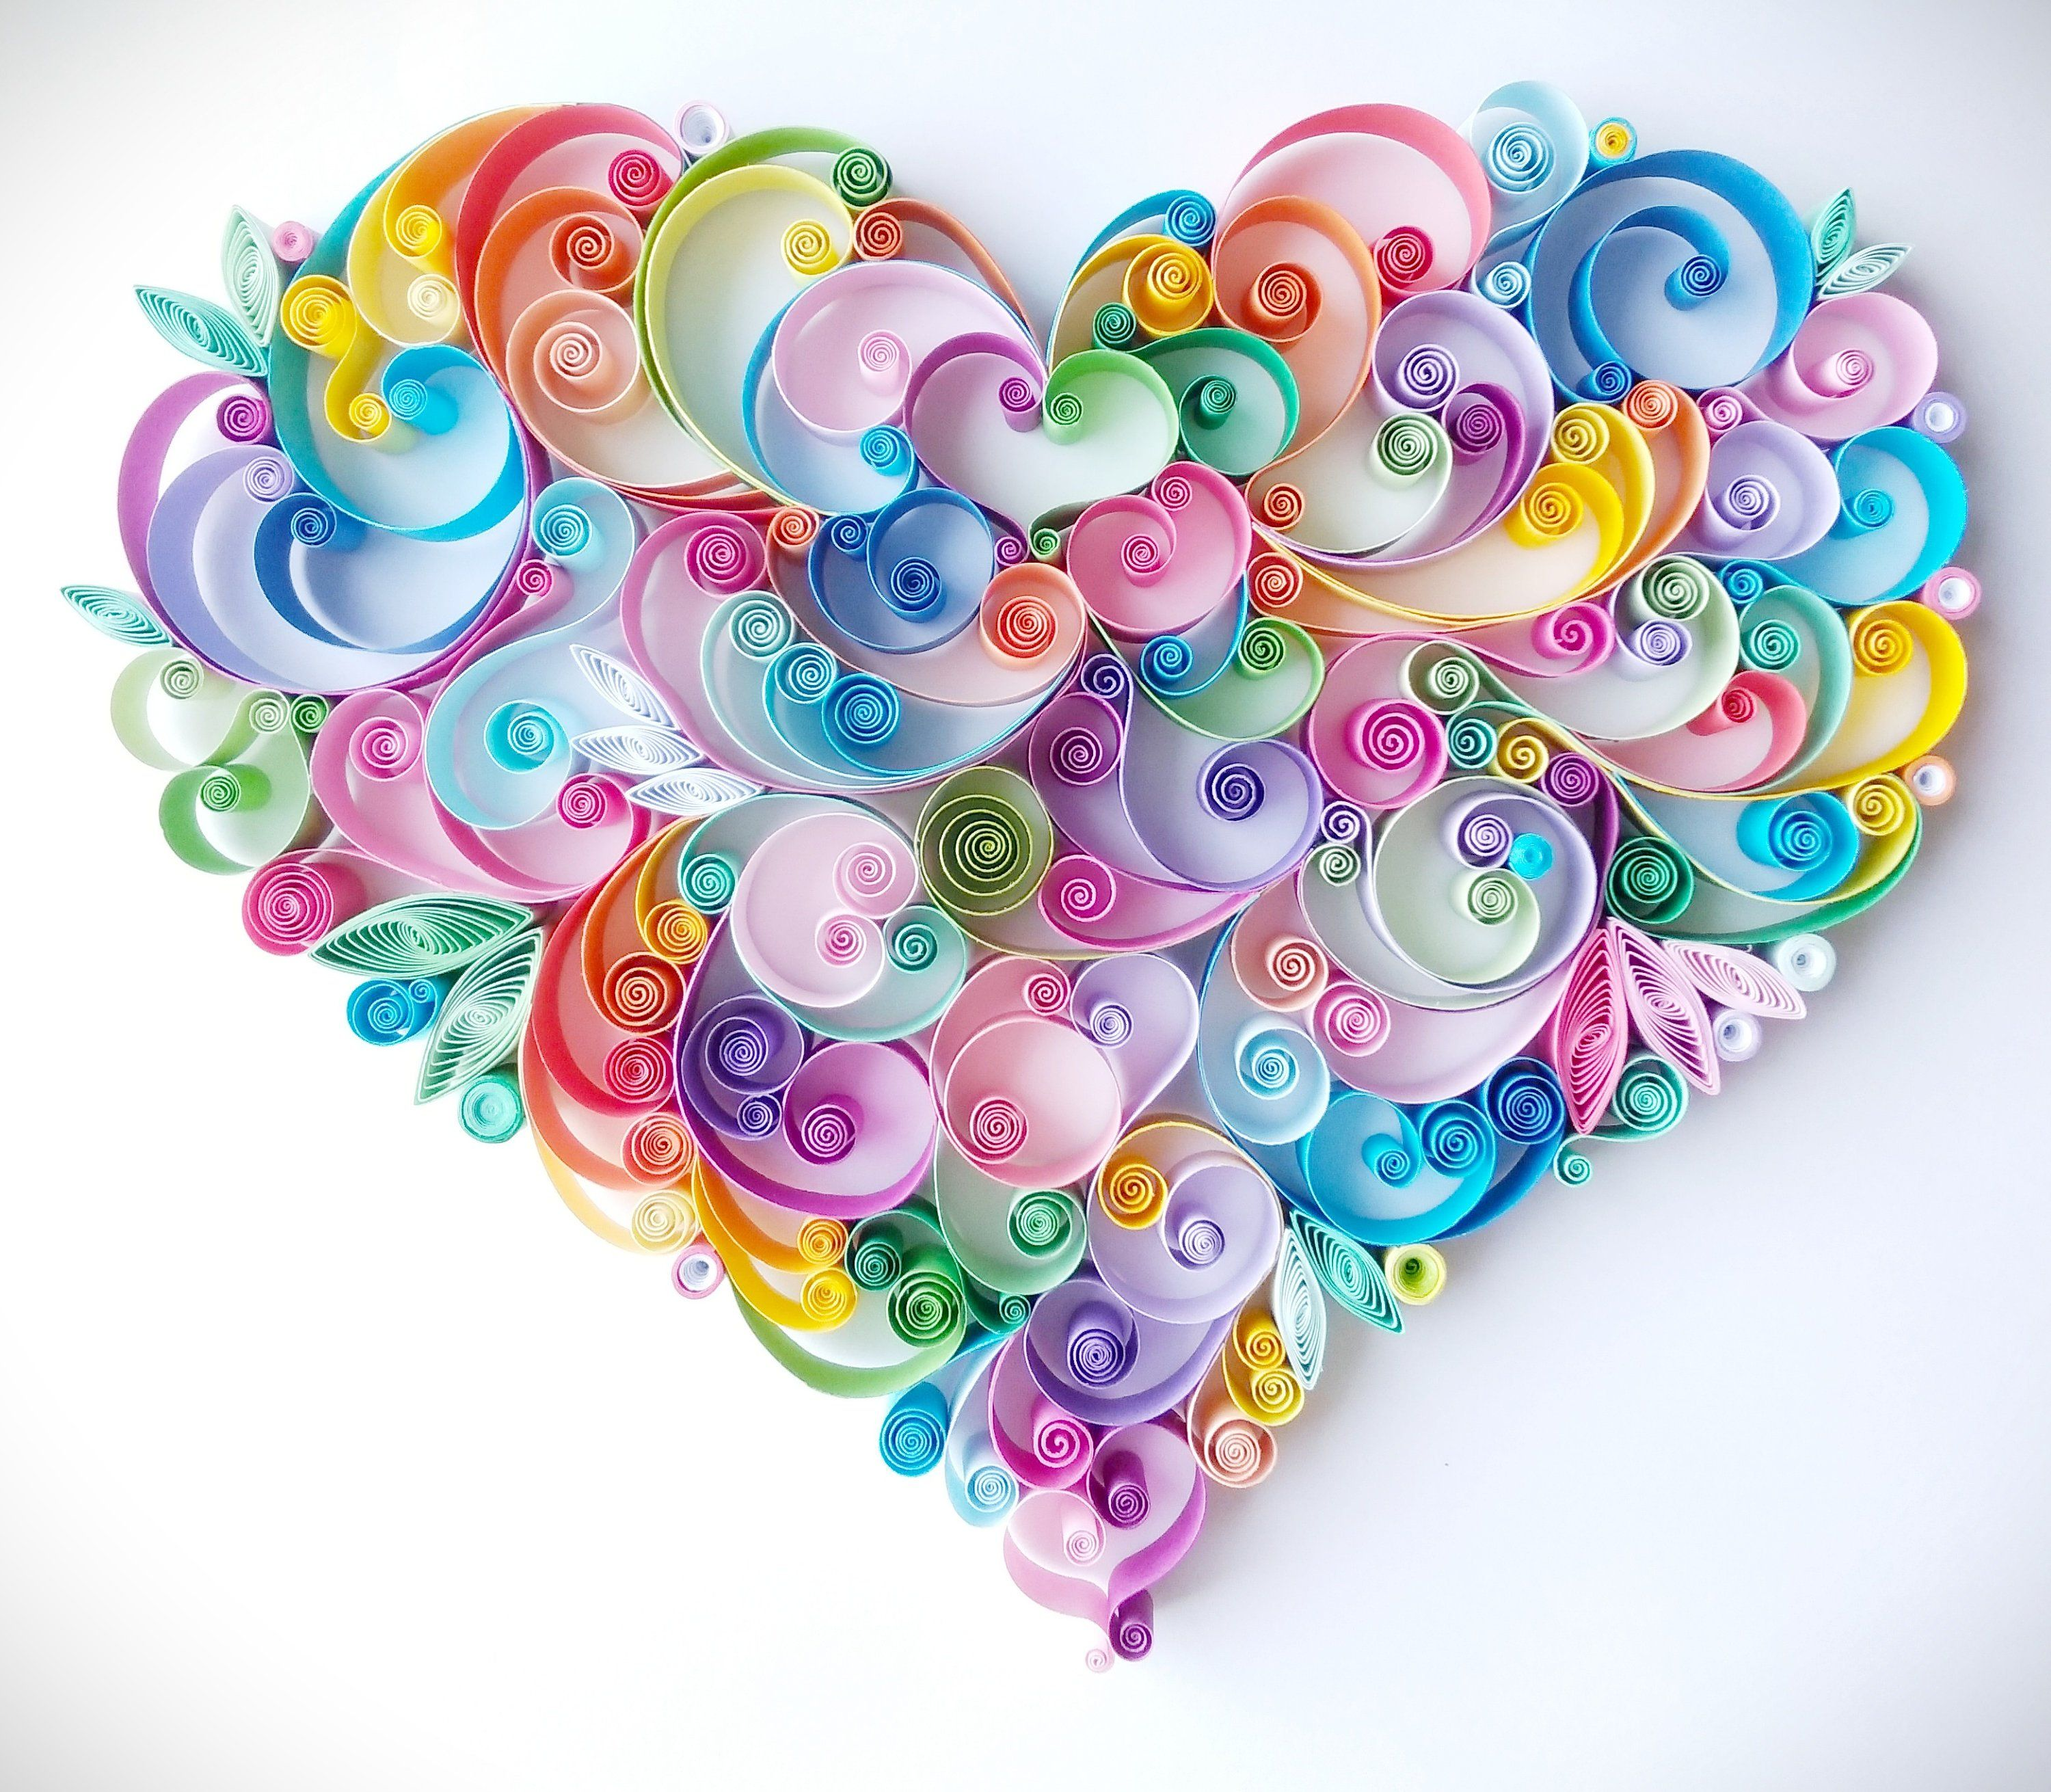 Quilling paper art design rainbow heart handmade  home decor for her him anniversary wedding wall di quillingdesign su etsy also quilled floral perfect valentine   day rh pinterest